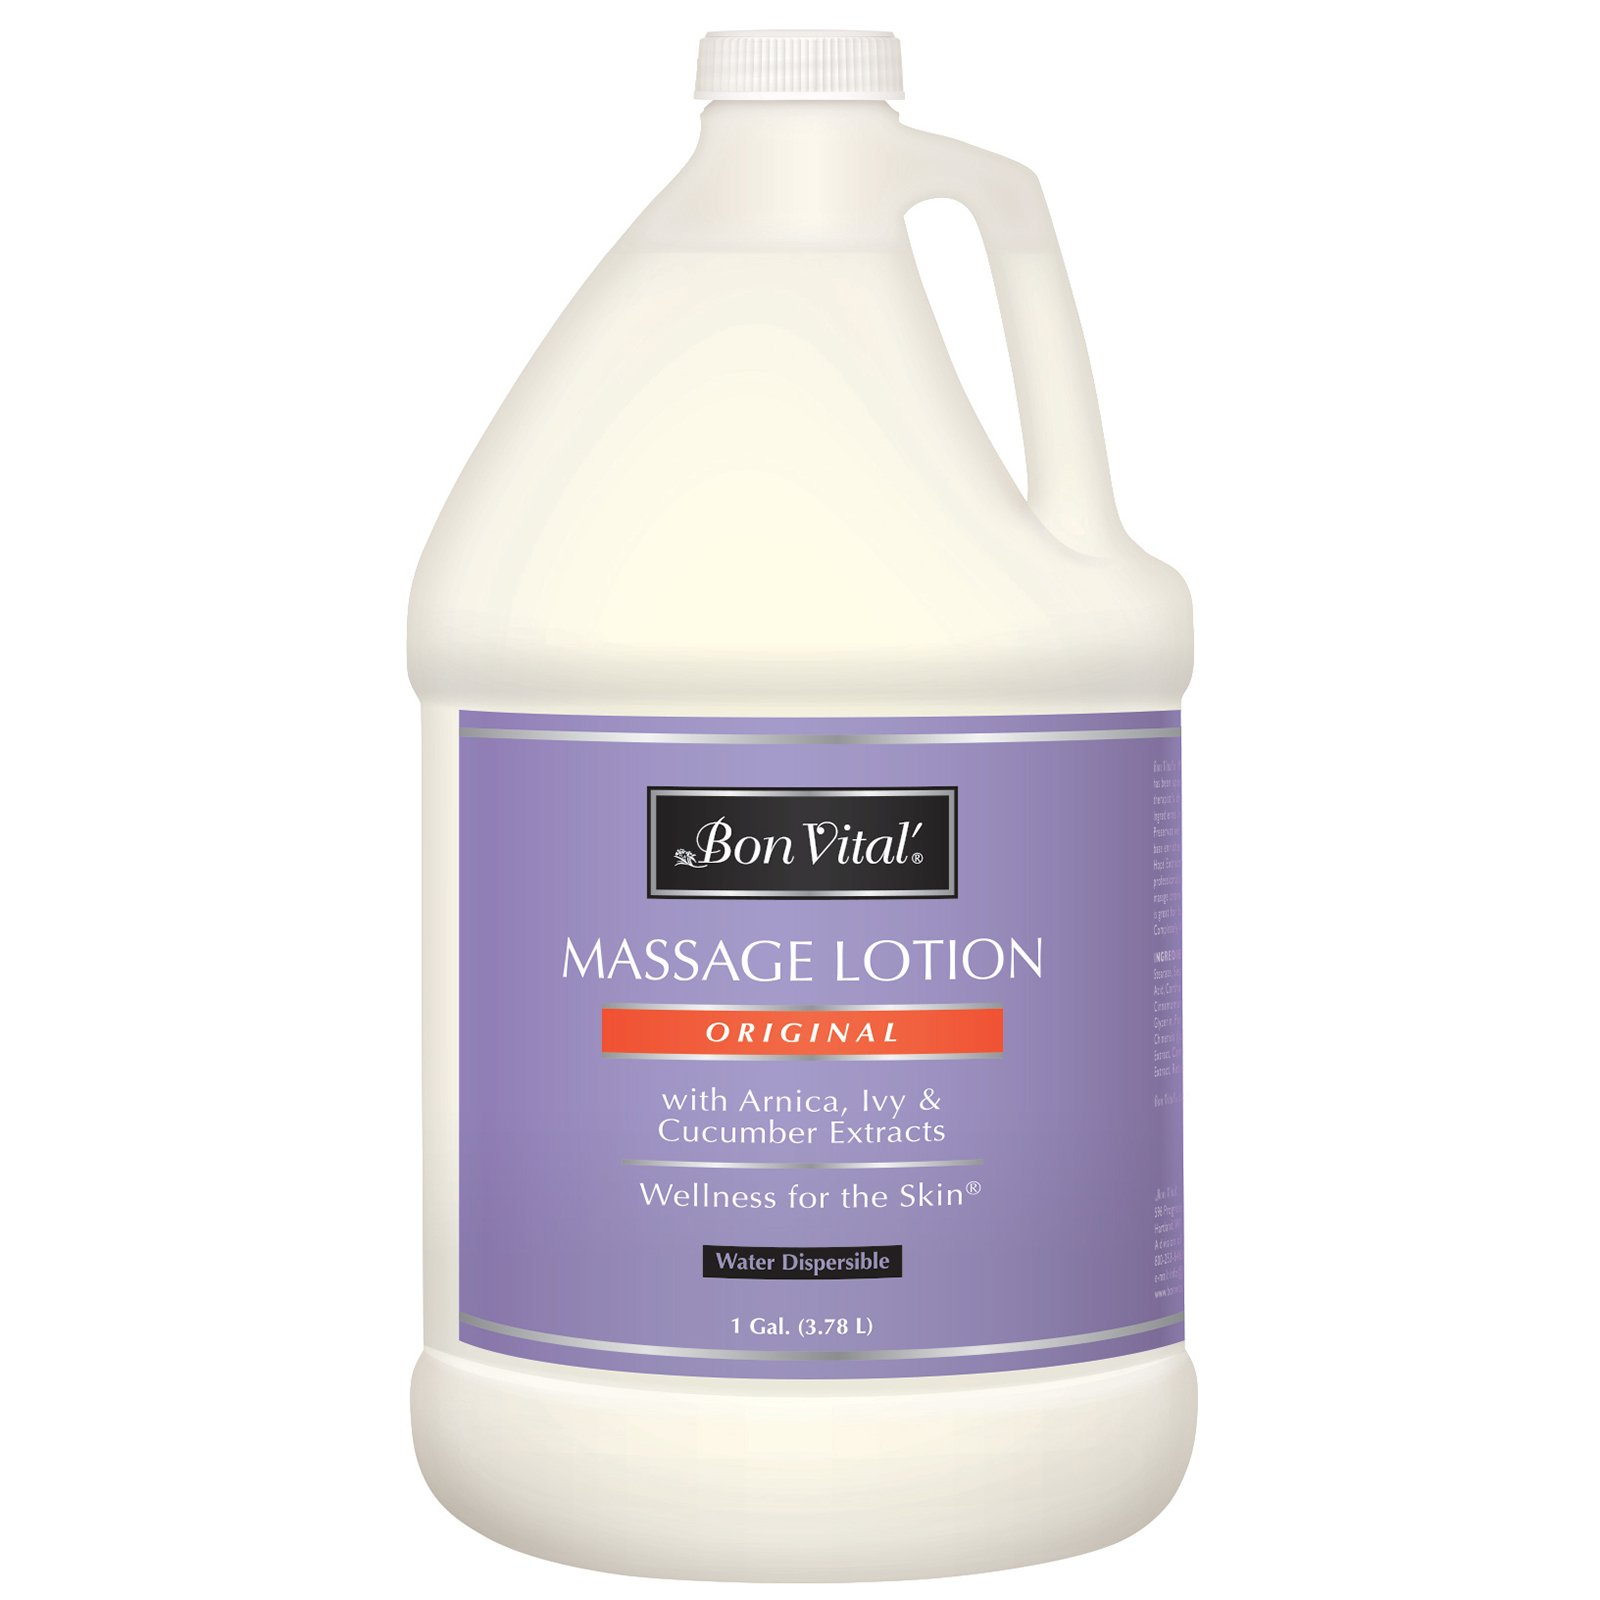 Bon Vital' Original Massage Lotion for a Versatile Massage Foundation to Relax Sore Muscles & Repair Dry Skin, Lightweight, Non-Greasy Formula to Moisturize and Repair Dry Skin, 1 Gallon Bottle